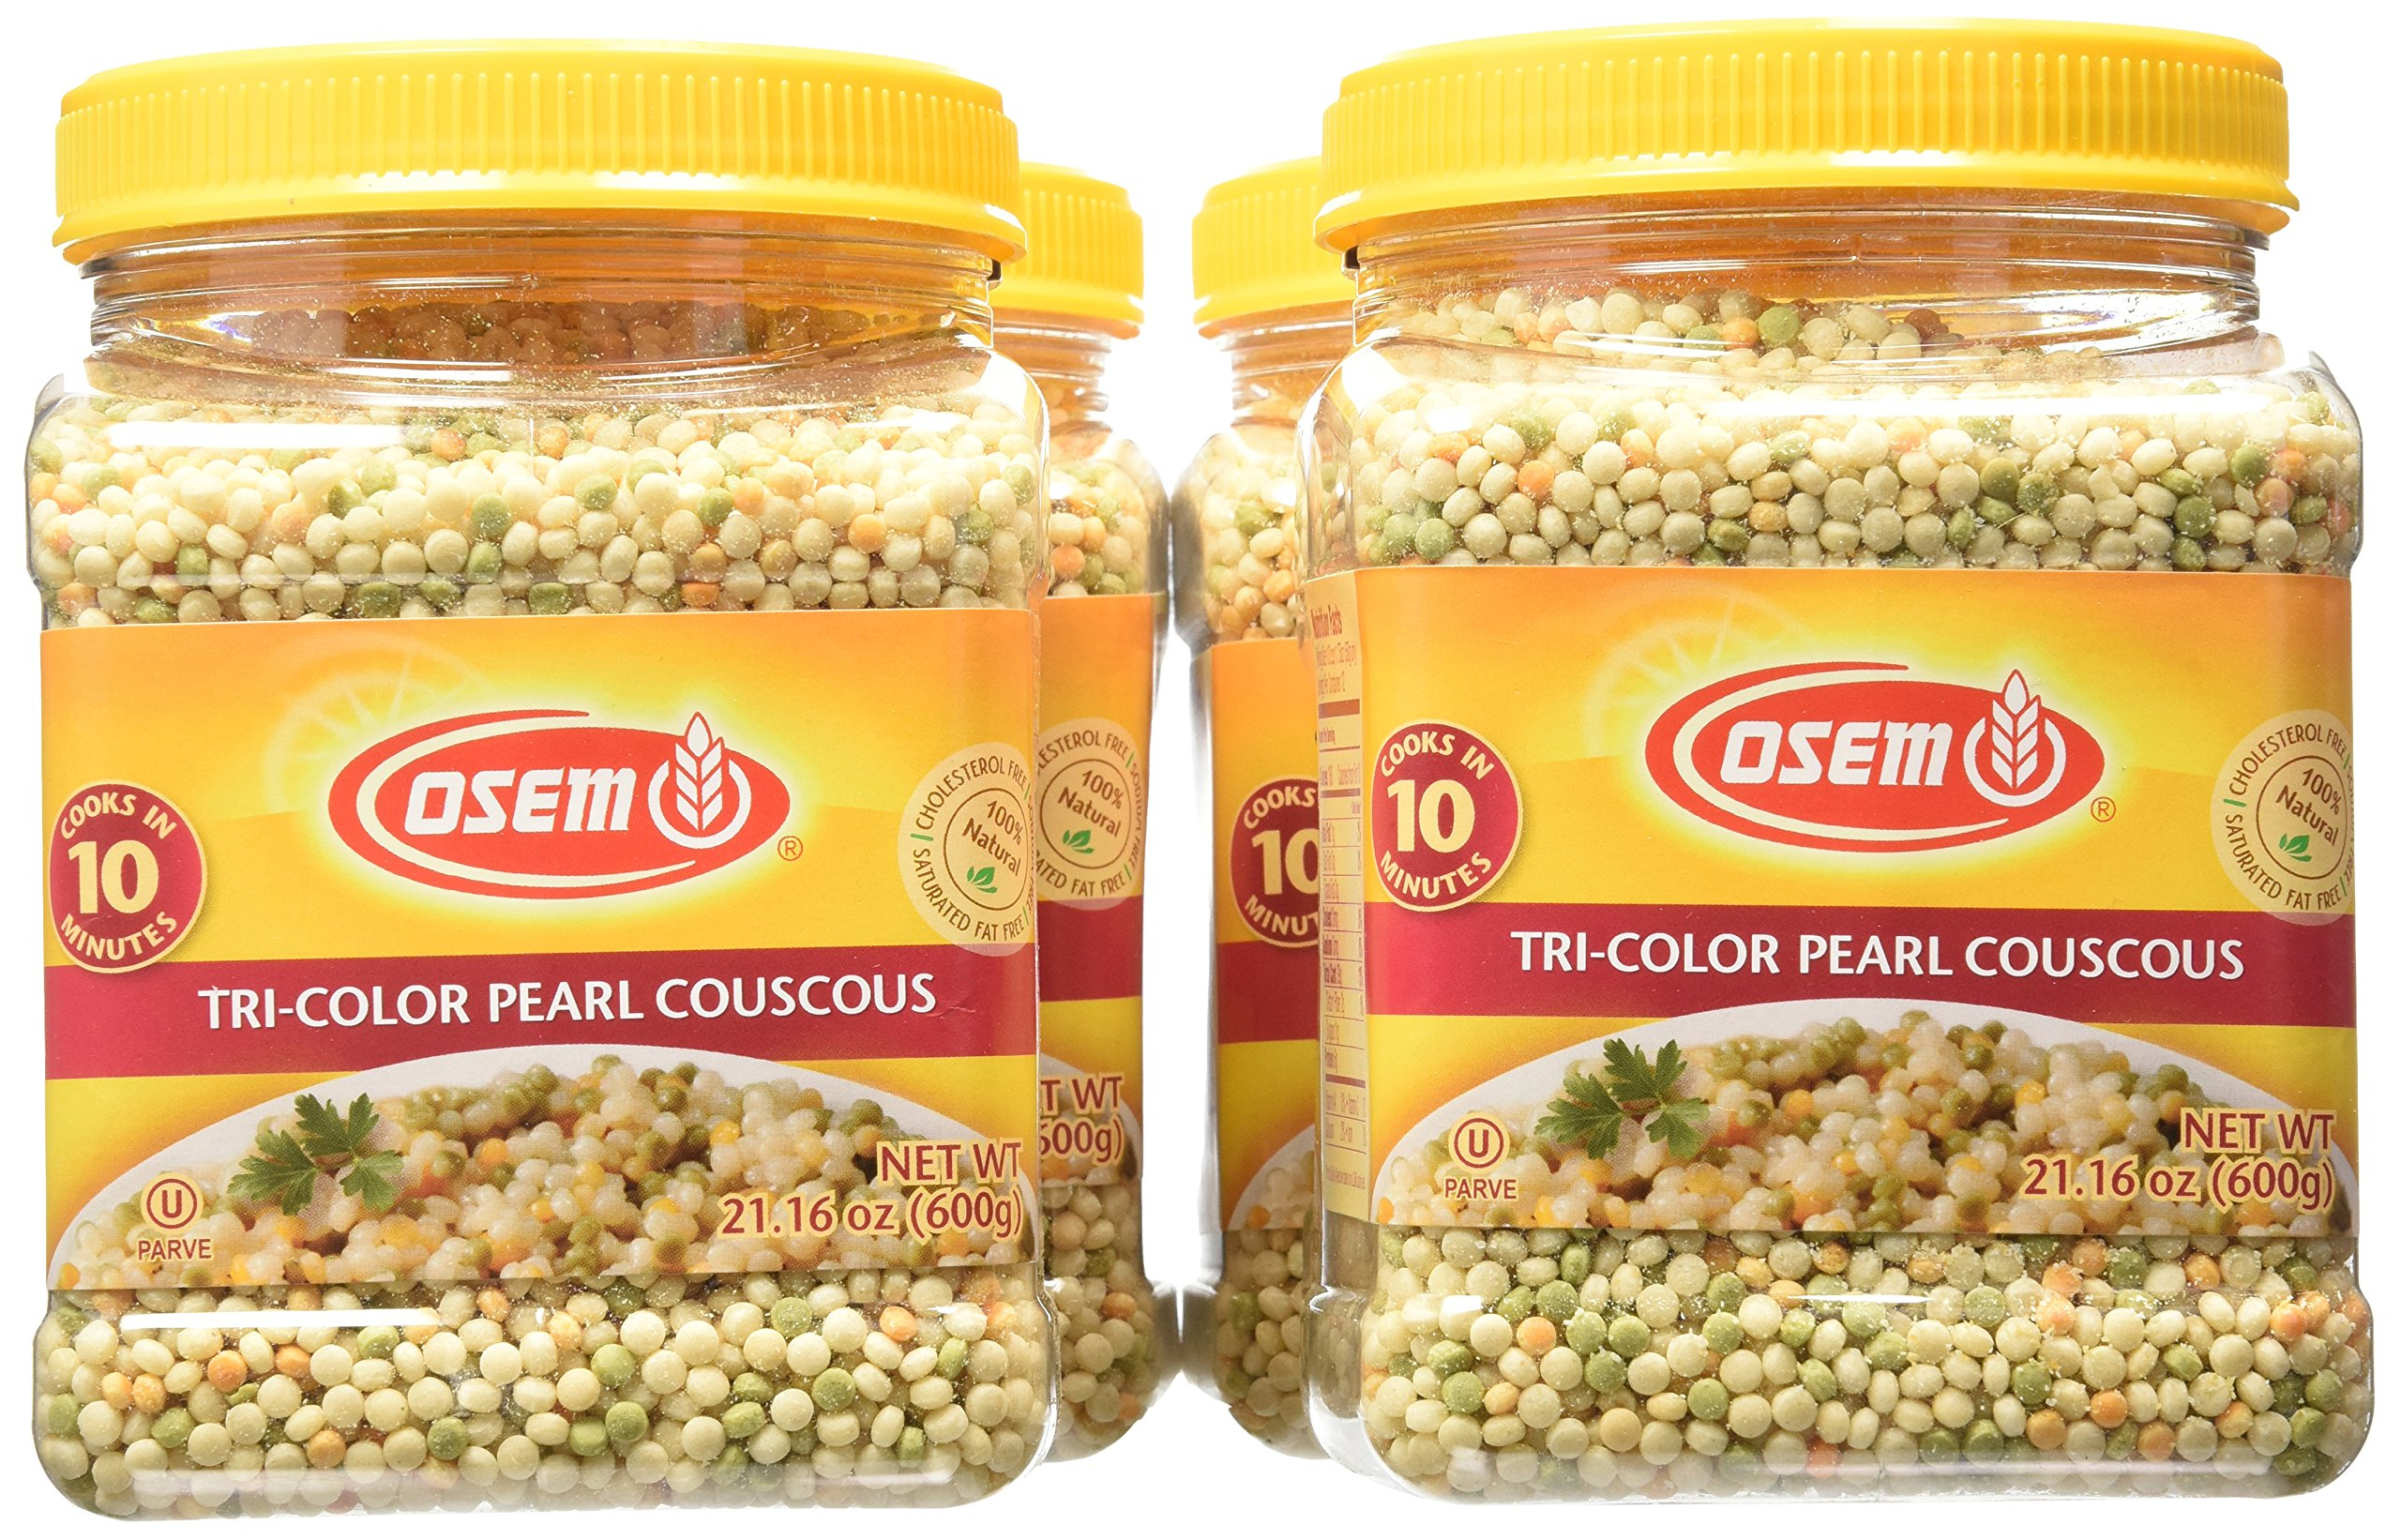 Osem Tri-Color Pearl Couscous, 21.16 Ounce (Pack of 4) by Osem